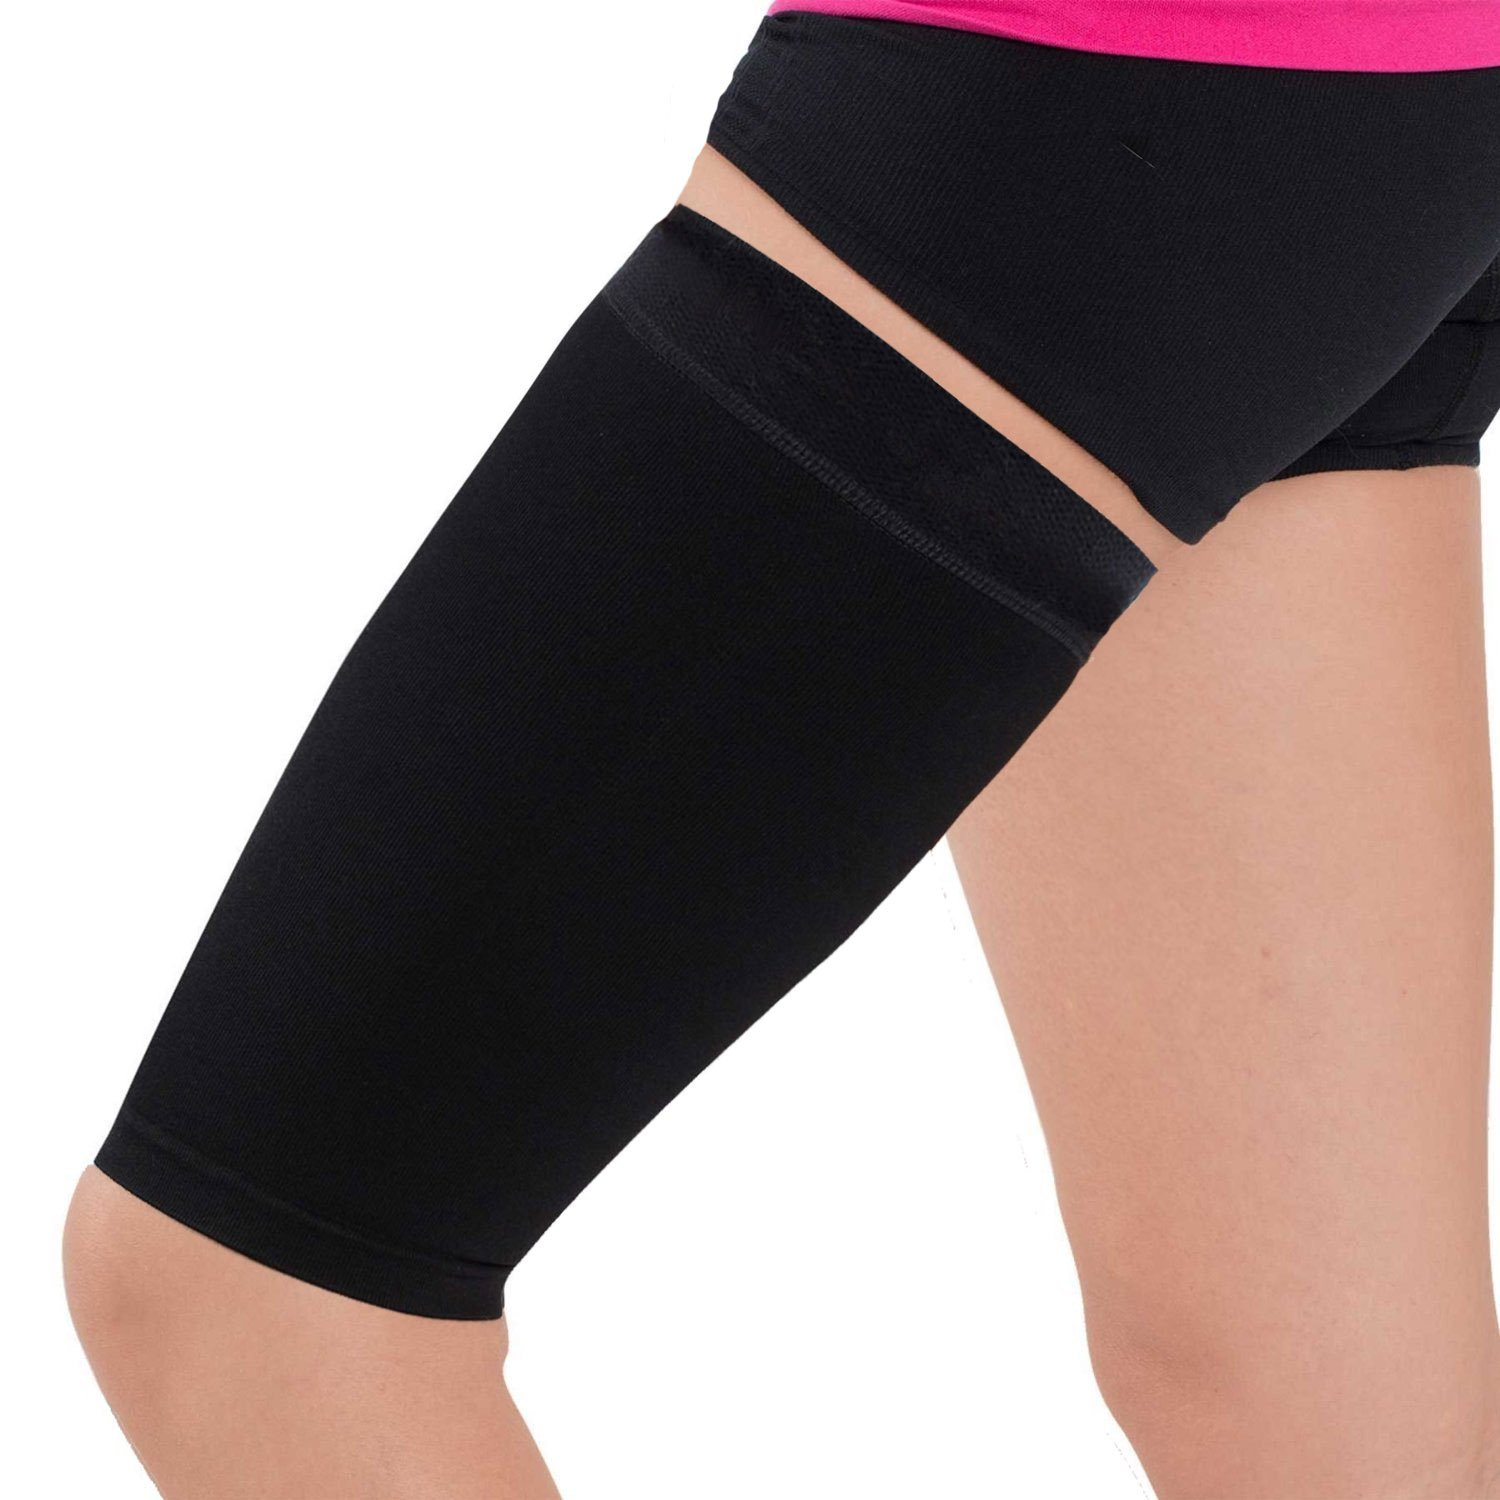 Thigh Compression Sleeve – Hamstring, Quadriceps, Groin Pull and Strains – Running, Basketball, Tennis, Soccer, Sports – Athletic Thigh Support (Single) (Black, M)